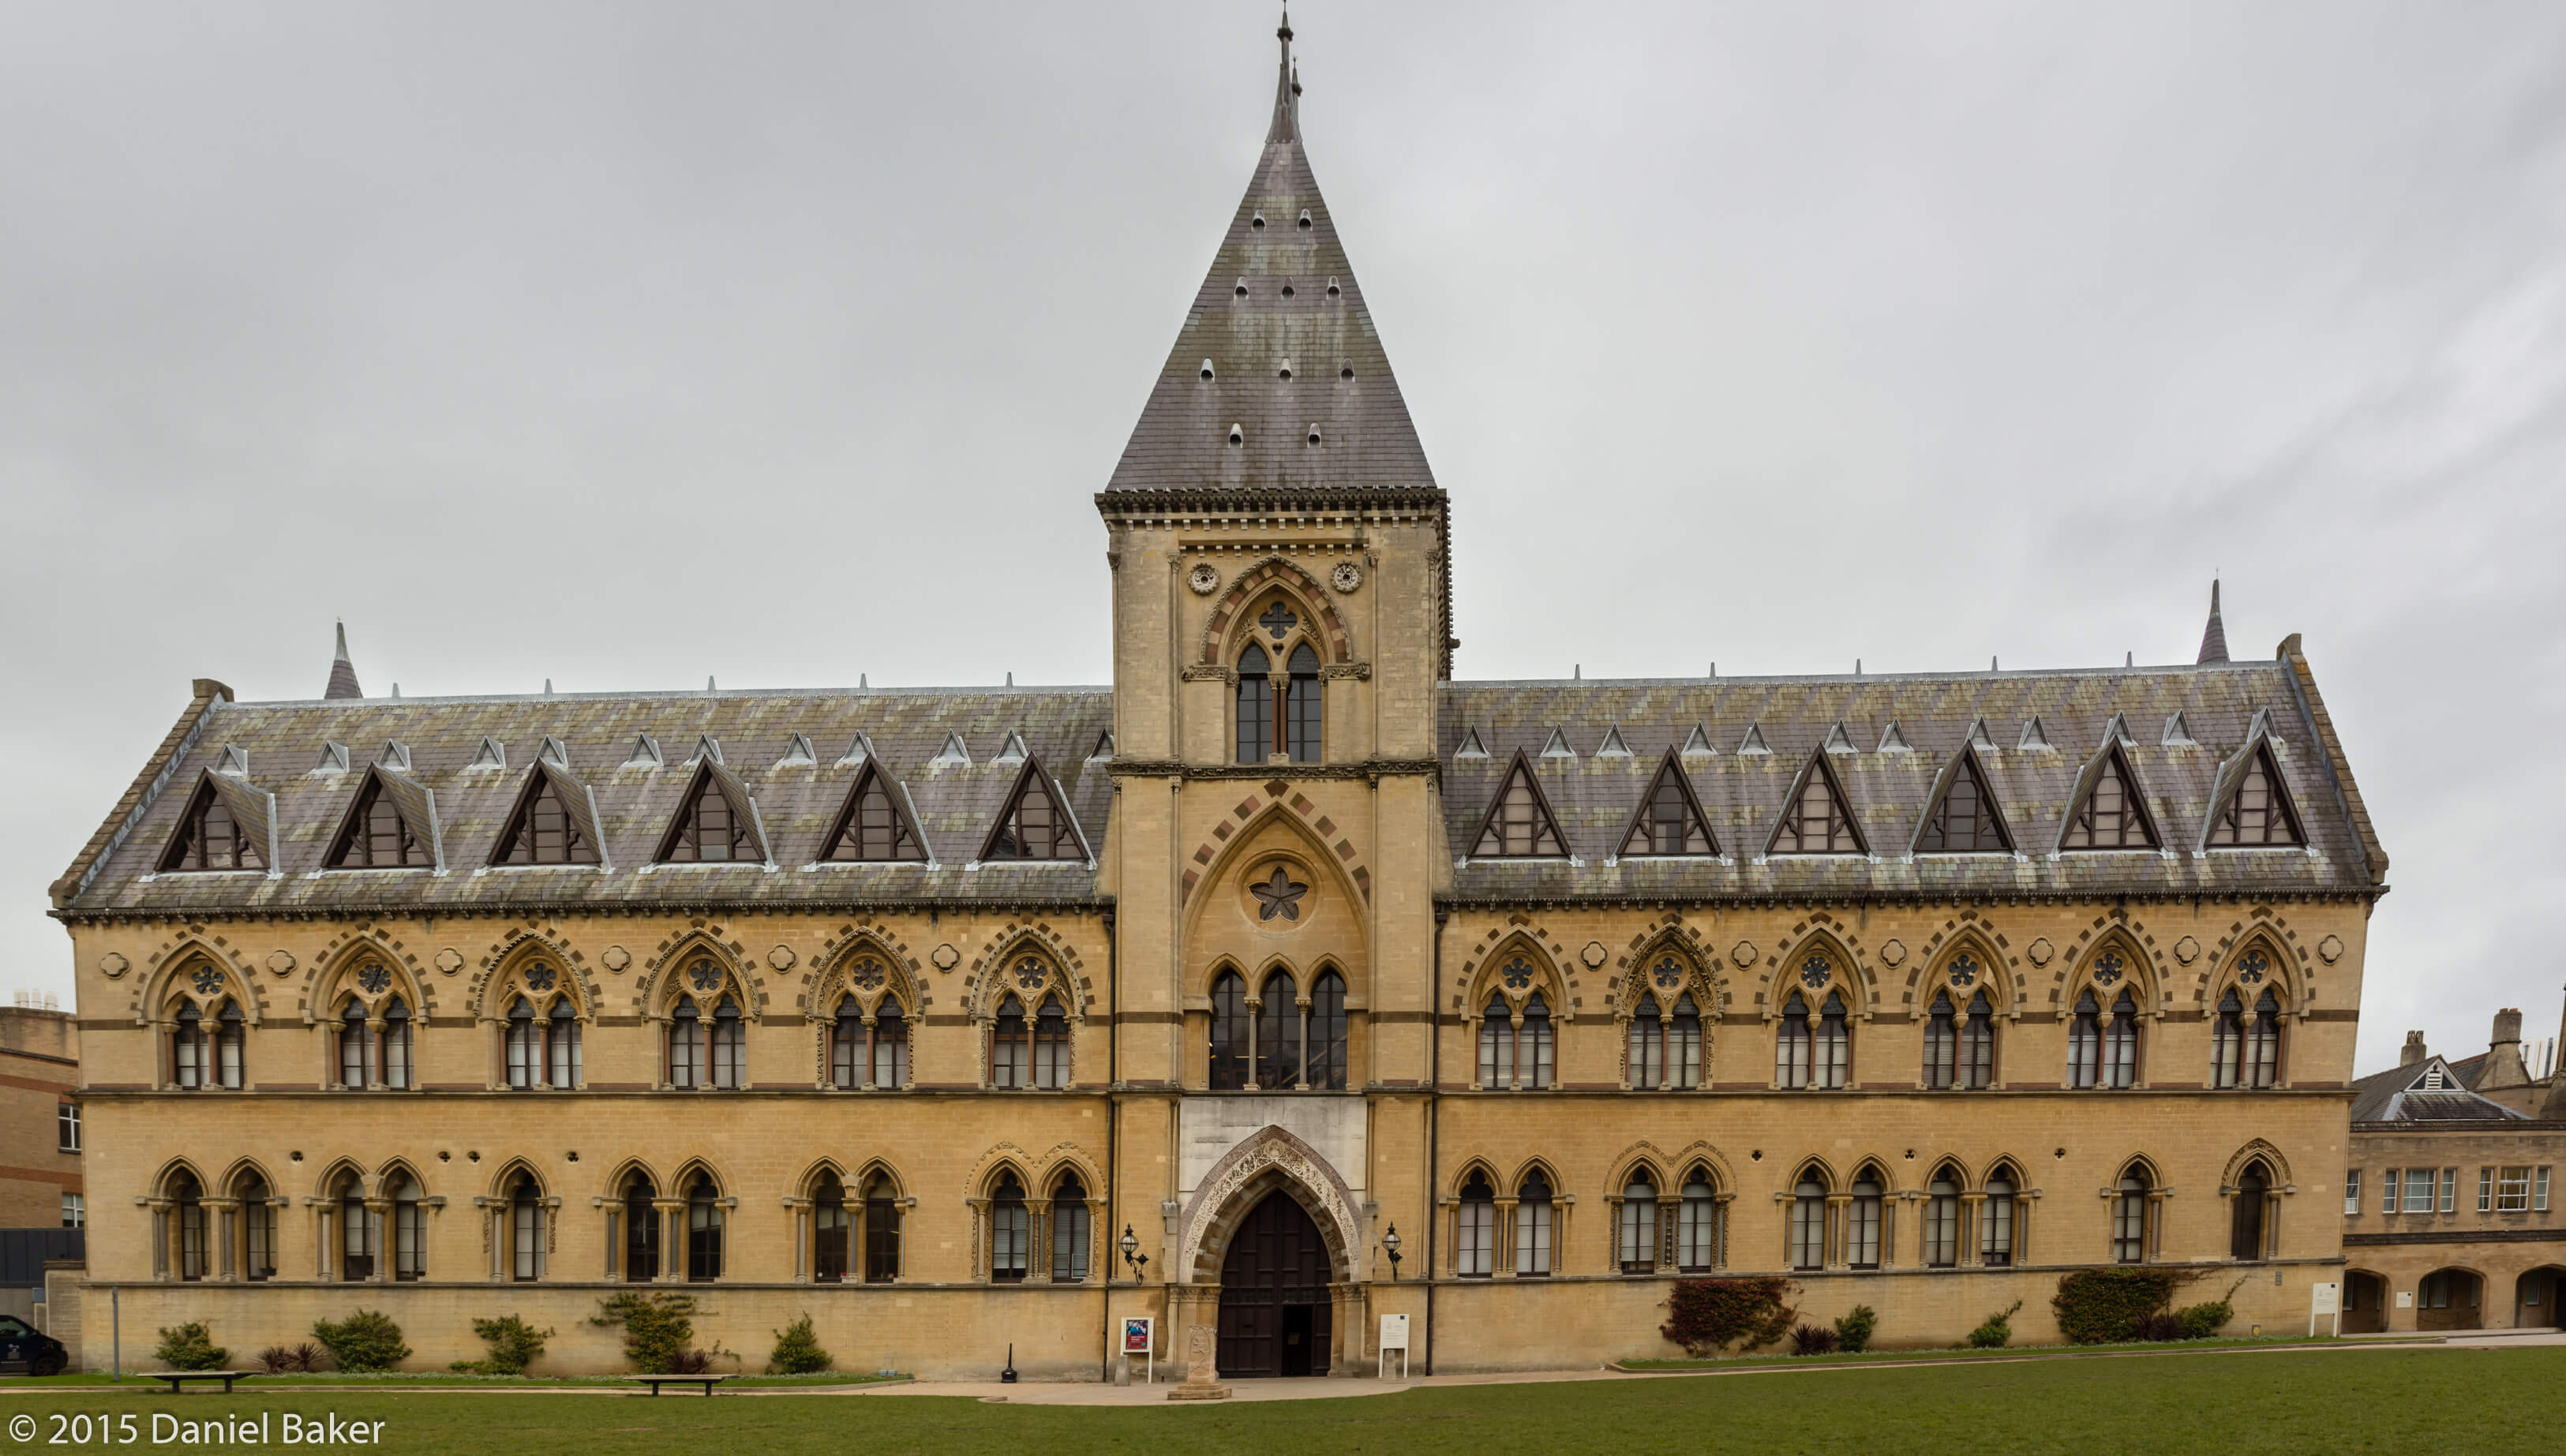 A photograph of the front of the Oxford University Museum of Natural History